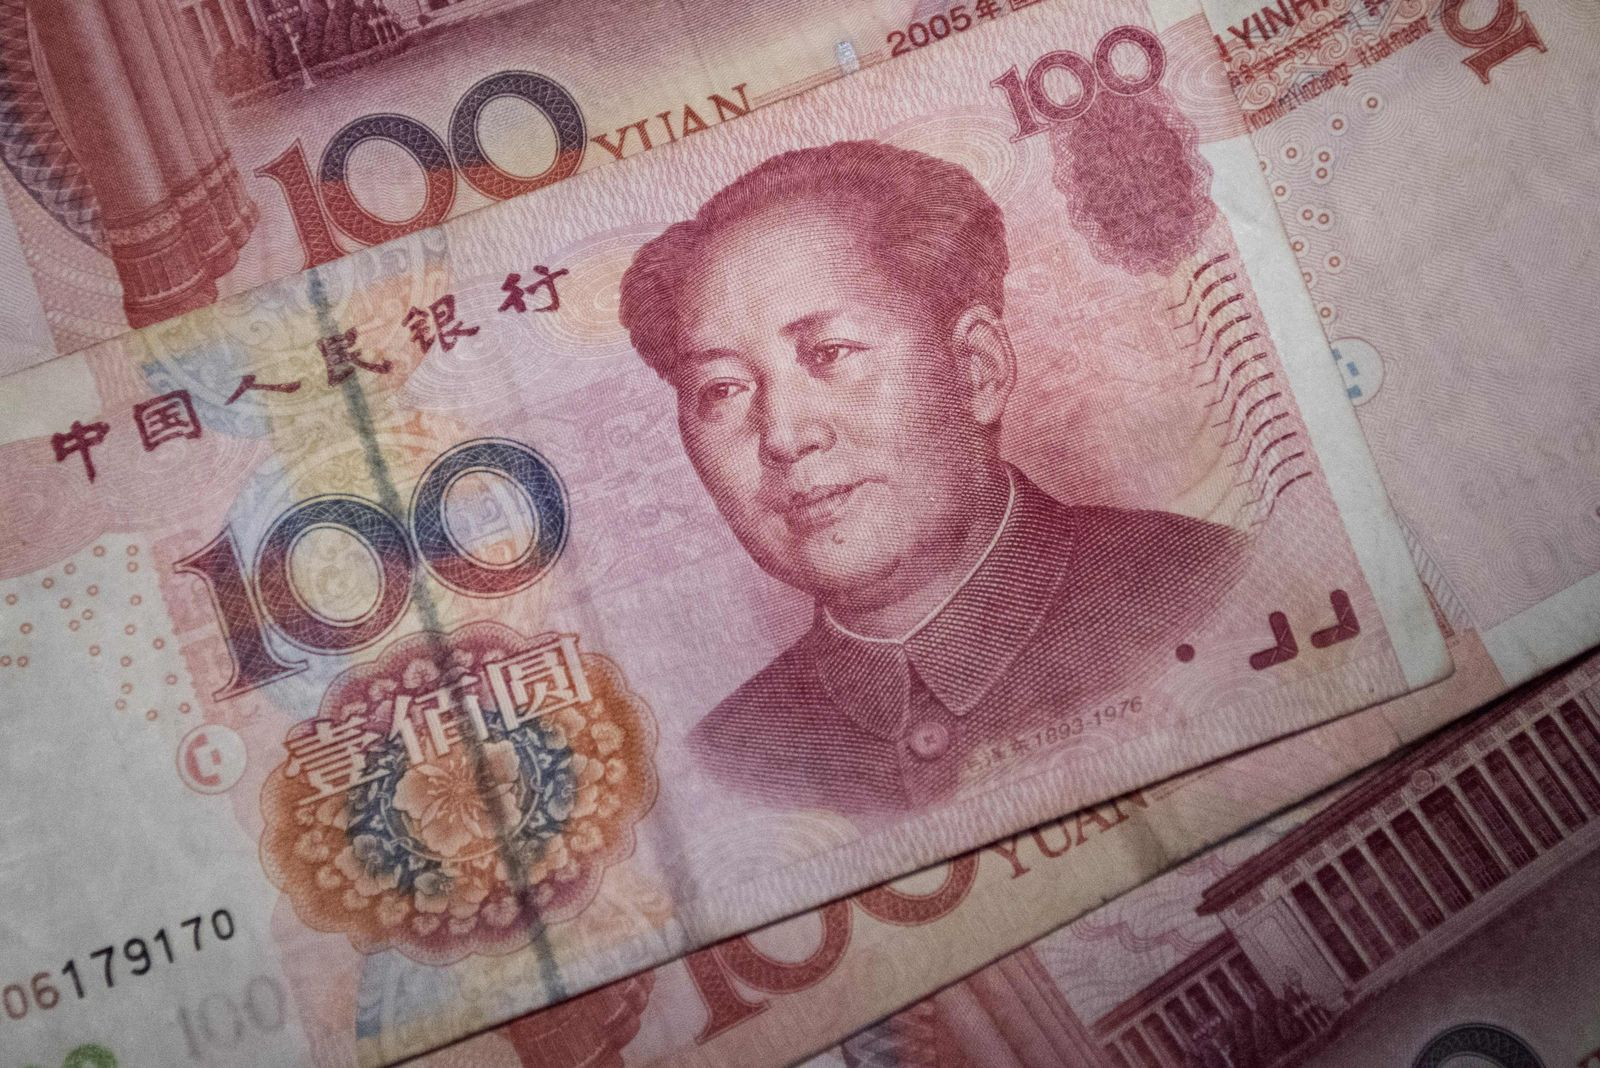 CHINA-ECONOMY-CURRENCY